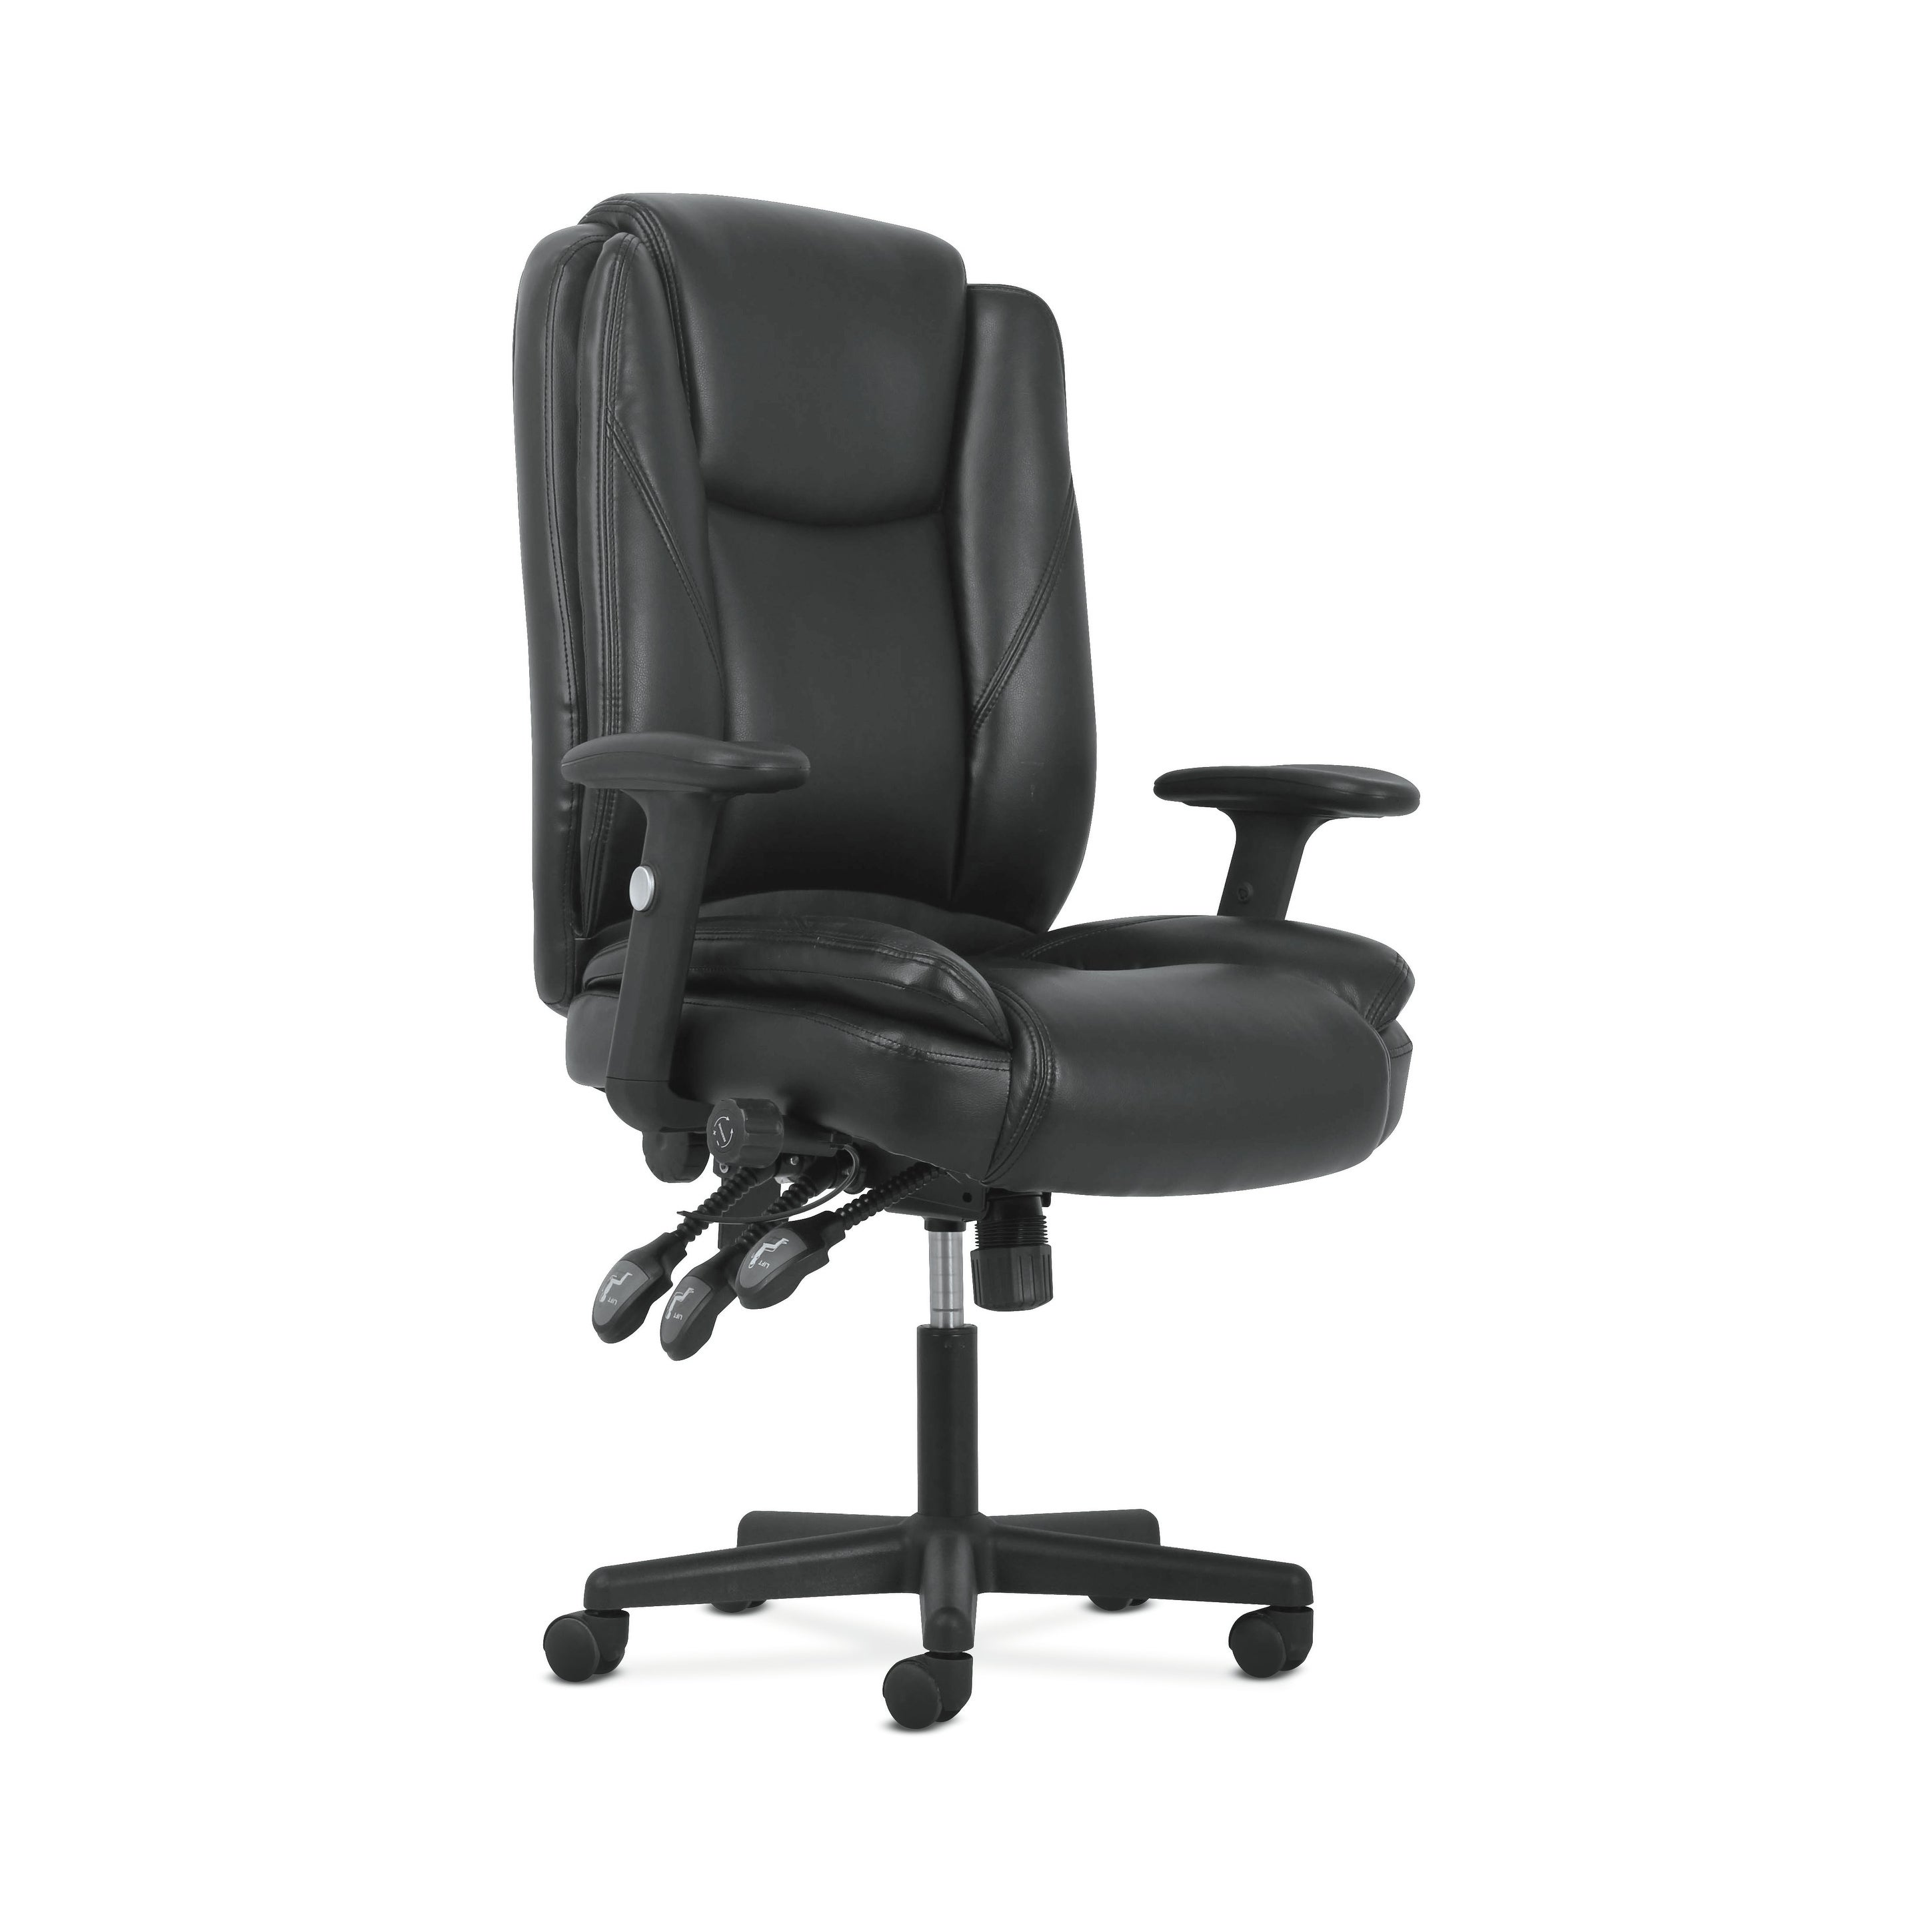 Sadie High Back Leather Office Computer Chair Ergonomic Adjustable Swivel Chair With Lumbar Support Black Bsxvst331 Overstock 23071342